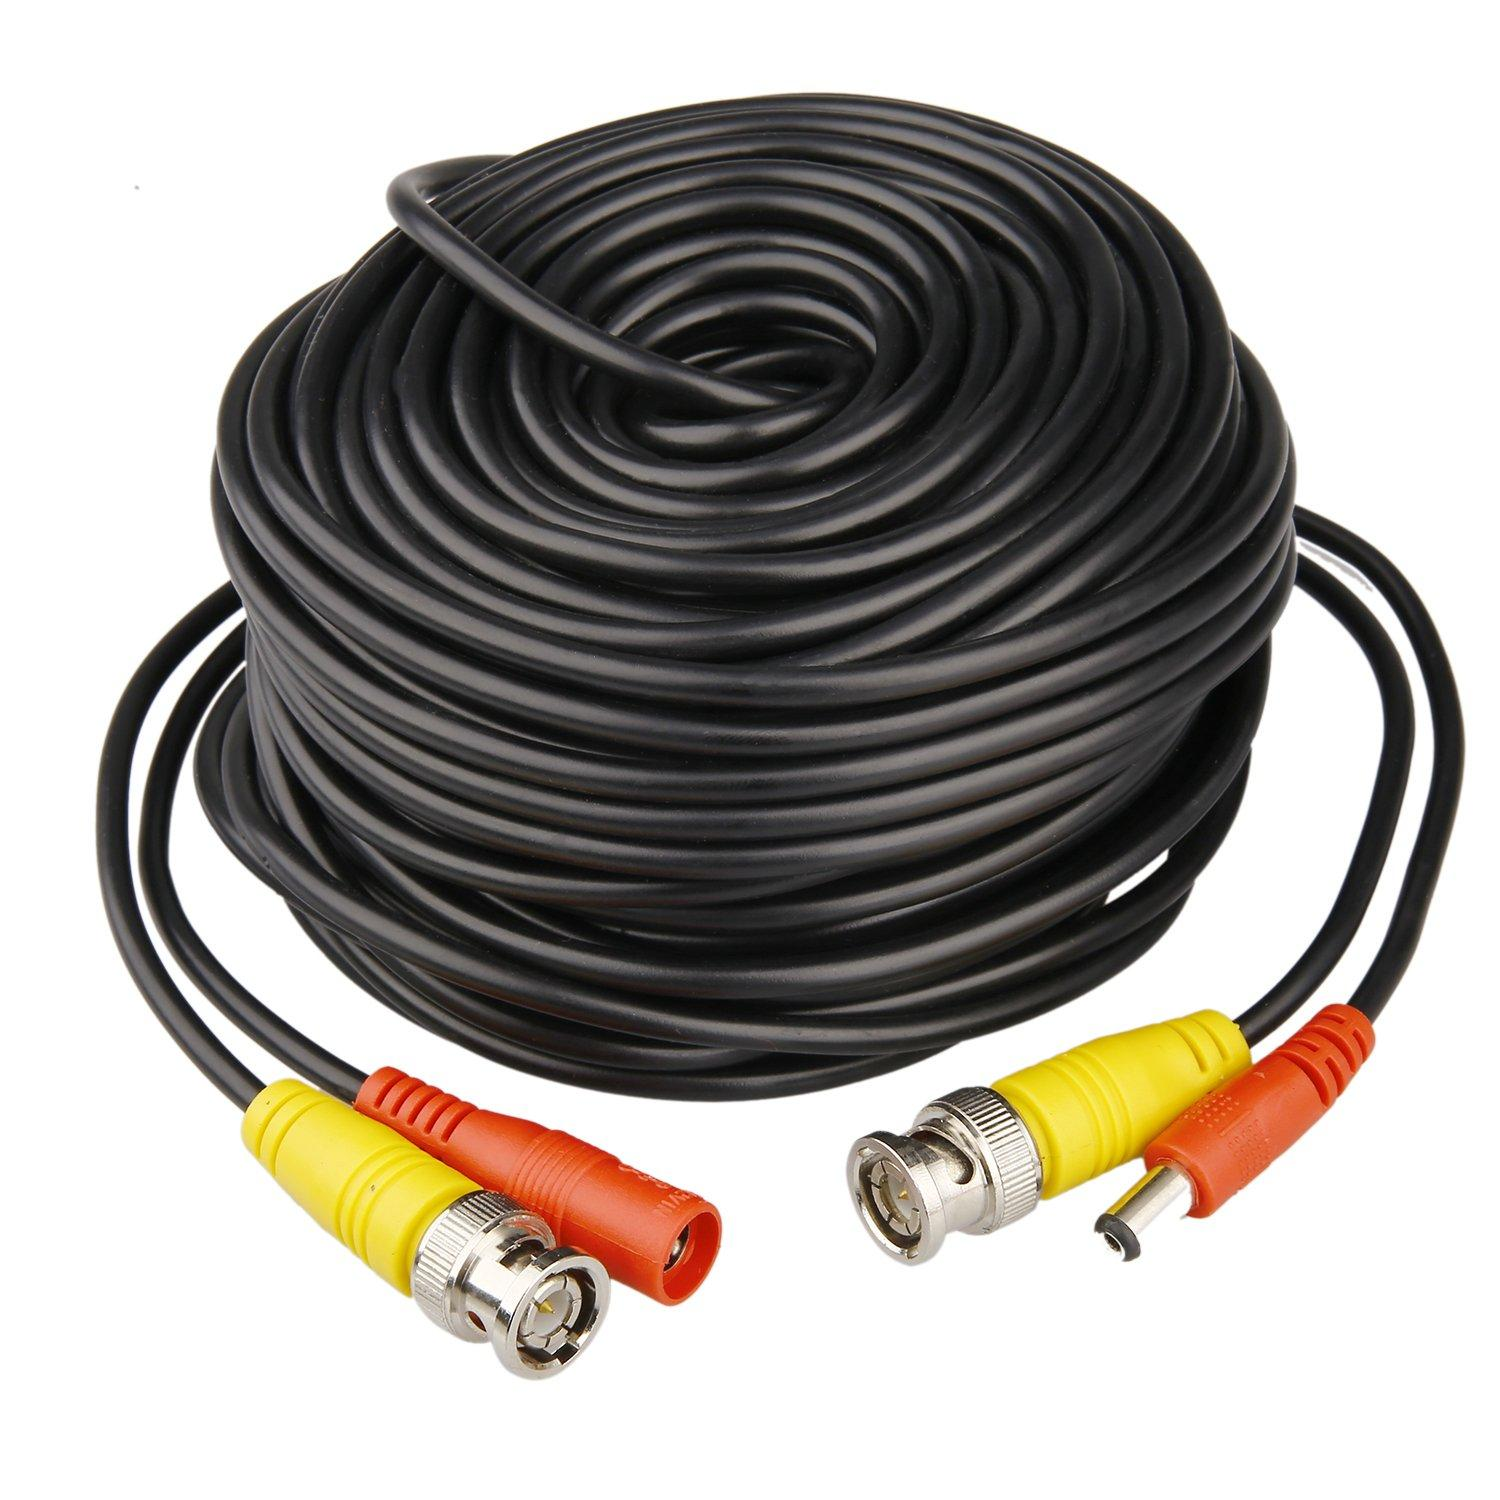 HISVISION 4 Pack 100ft BNC Video Power Cable Security Camera Wire Cord Extension